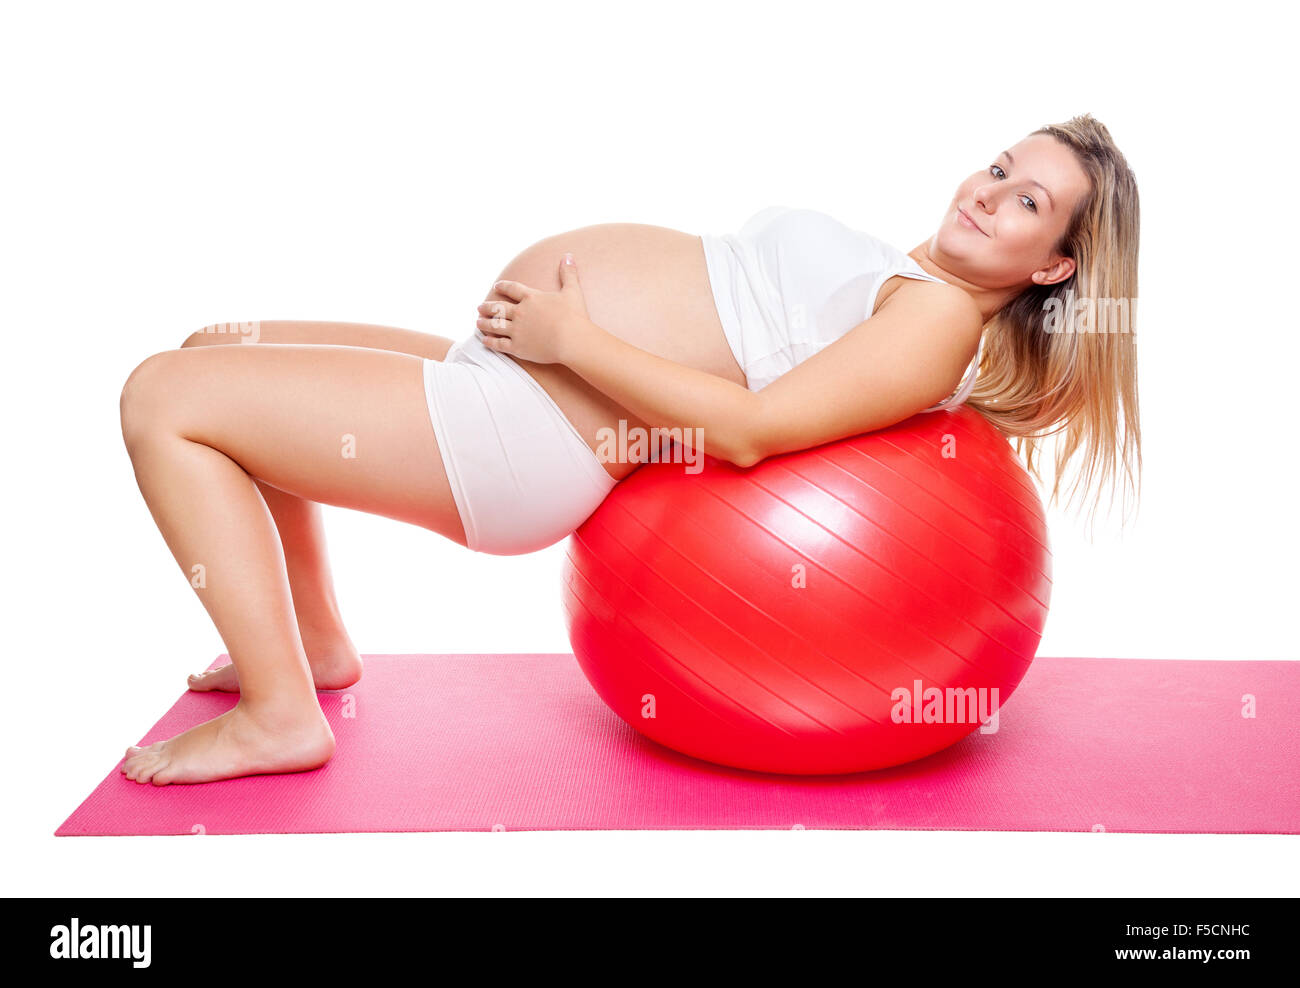 Working out with fitness ball during pregnancy - Stock Image